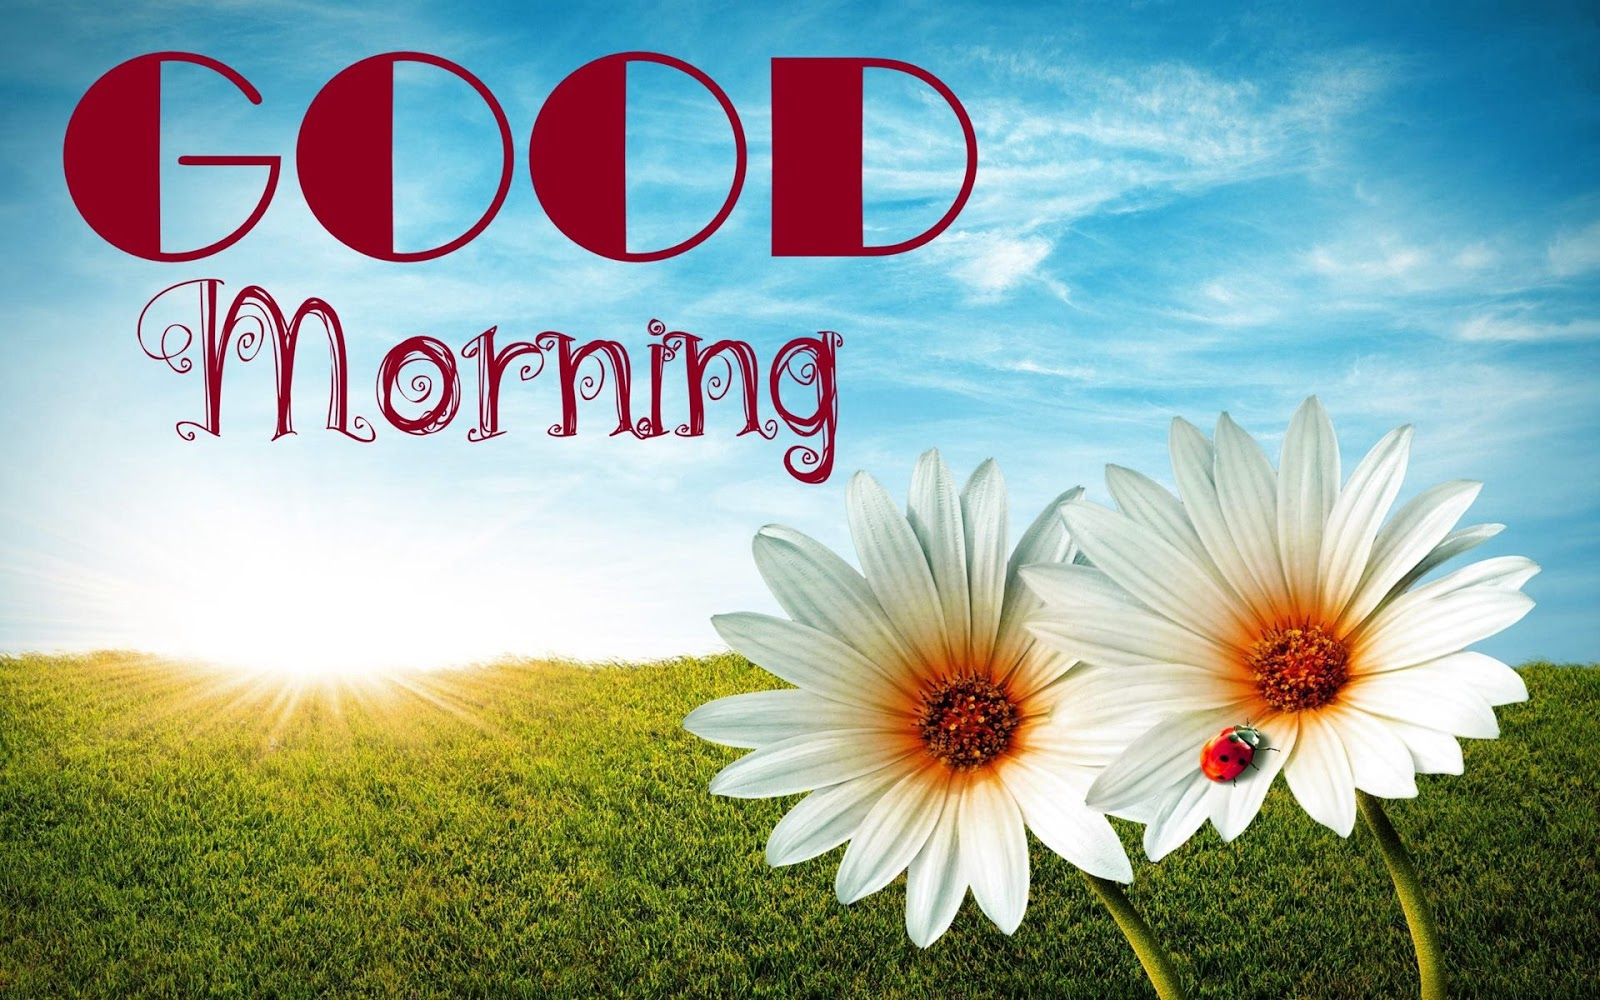 Images for good morning 30 free download new 2017 latest good morning wishes hd wallpapers greetings backgrounds m4hsunfo